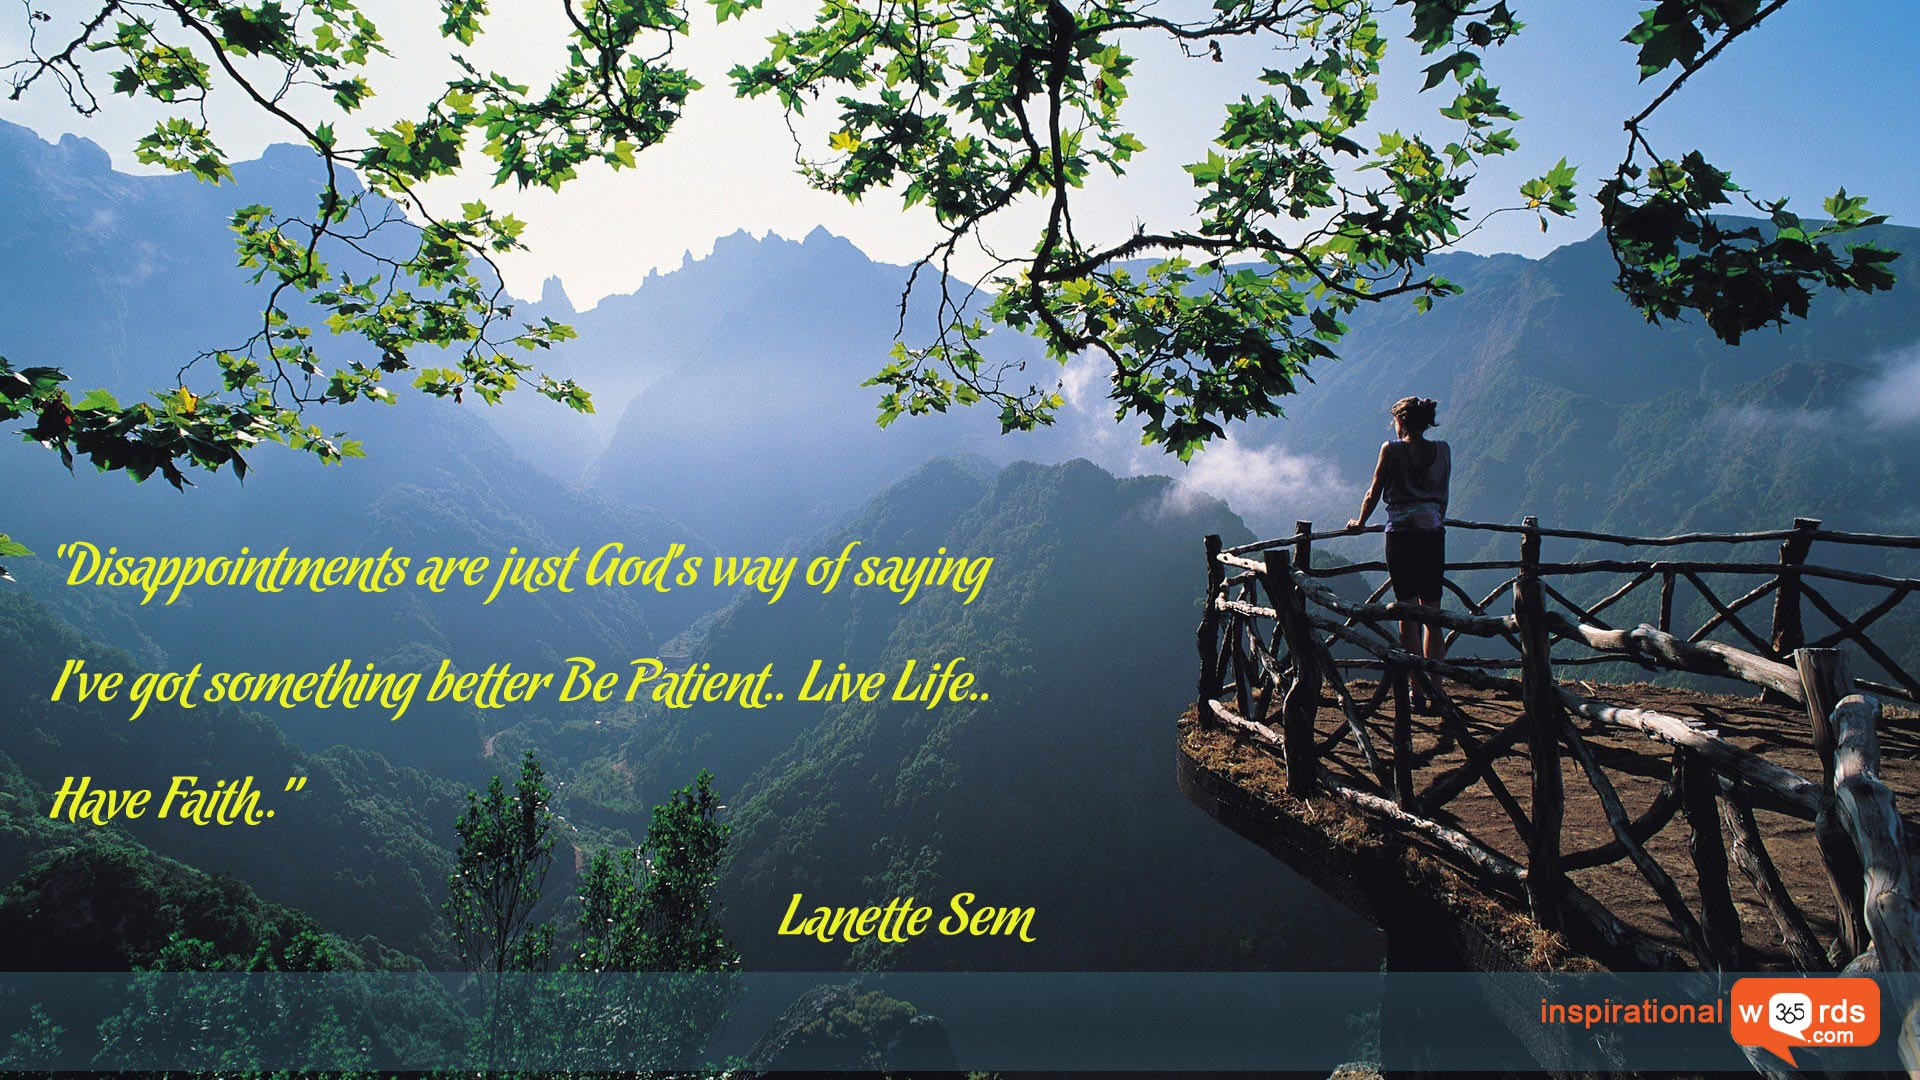 Inspirational Wallpaper Quote by Lanette Sem